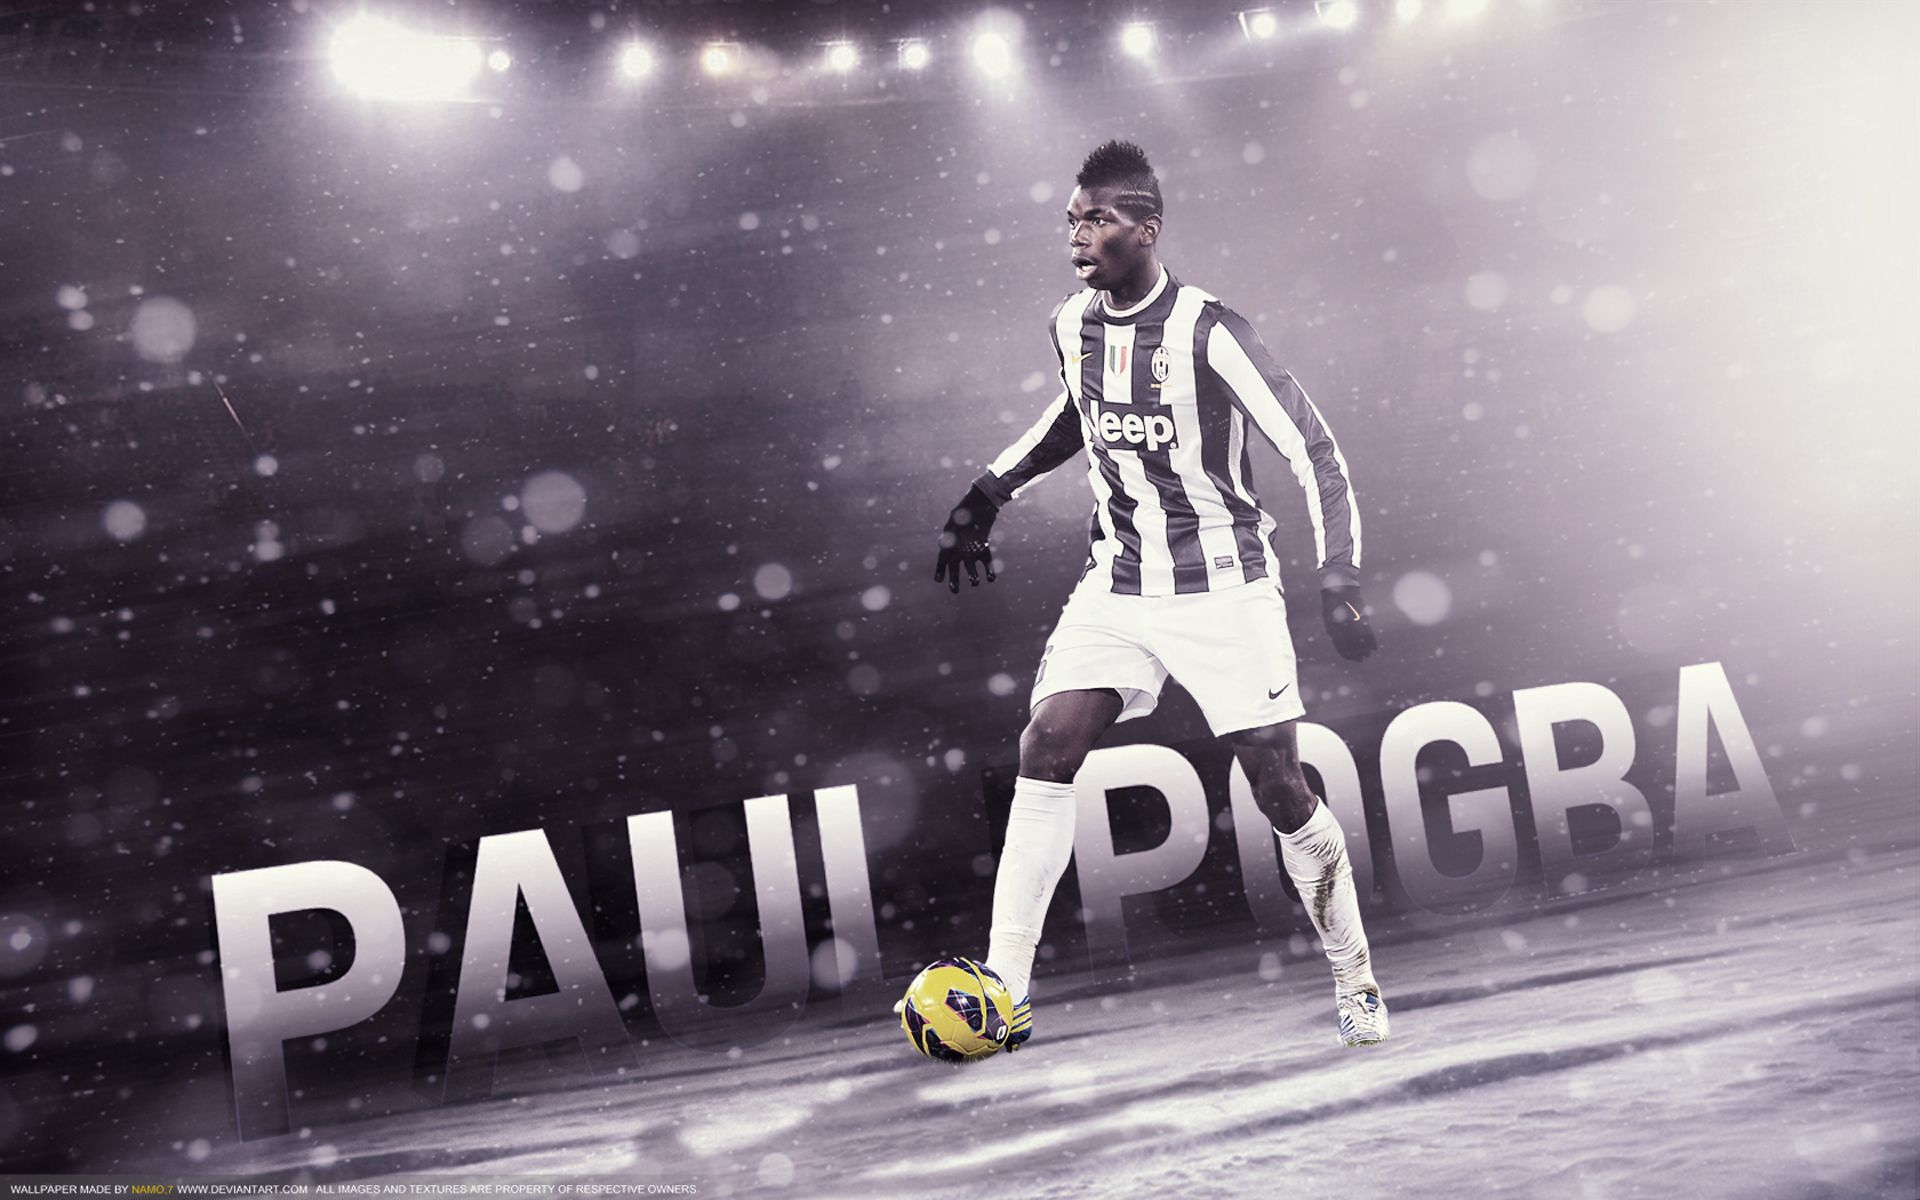 Paul pogba hd backgrounds httpwallpapersoccerpaul paul pogba hd backgrounds httpwallpapersoccerpaul voltagebd Image collections